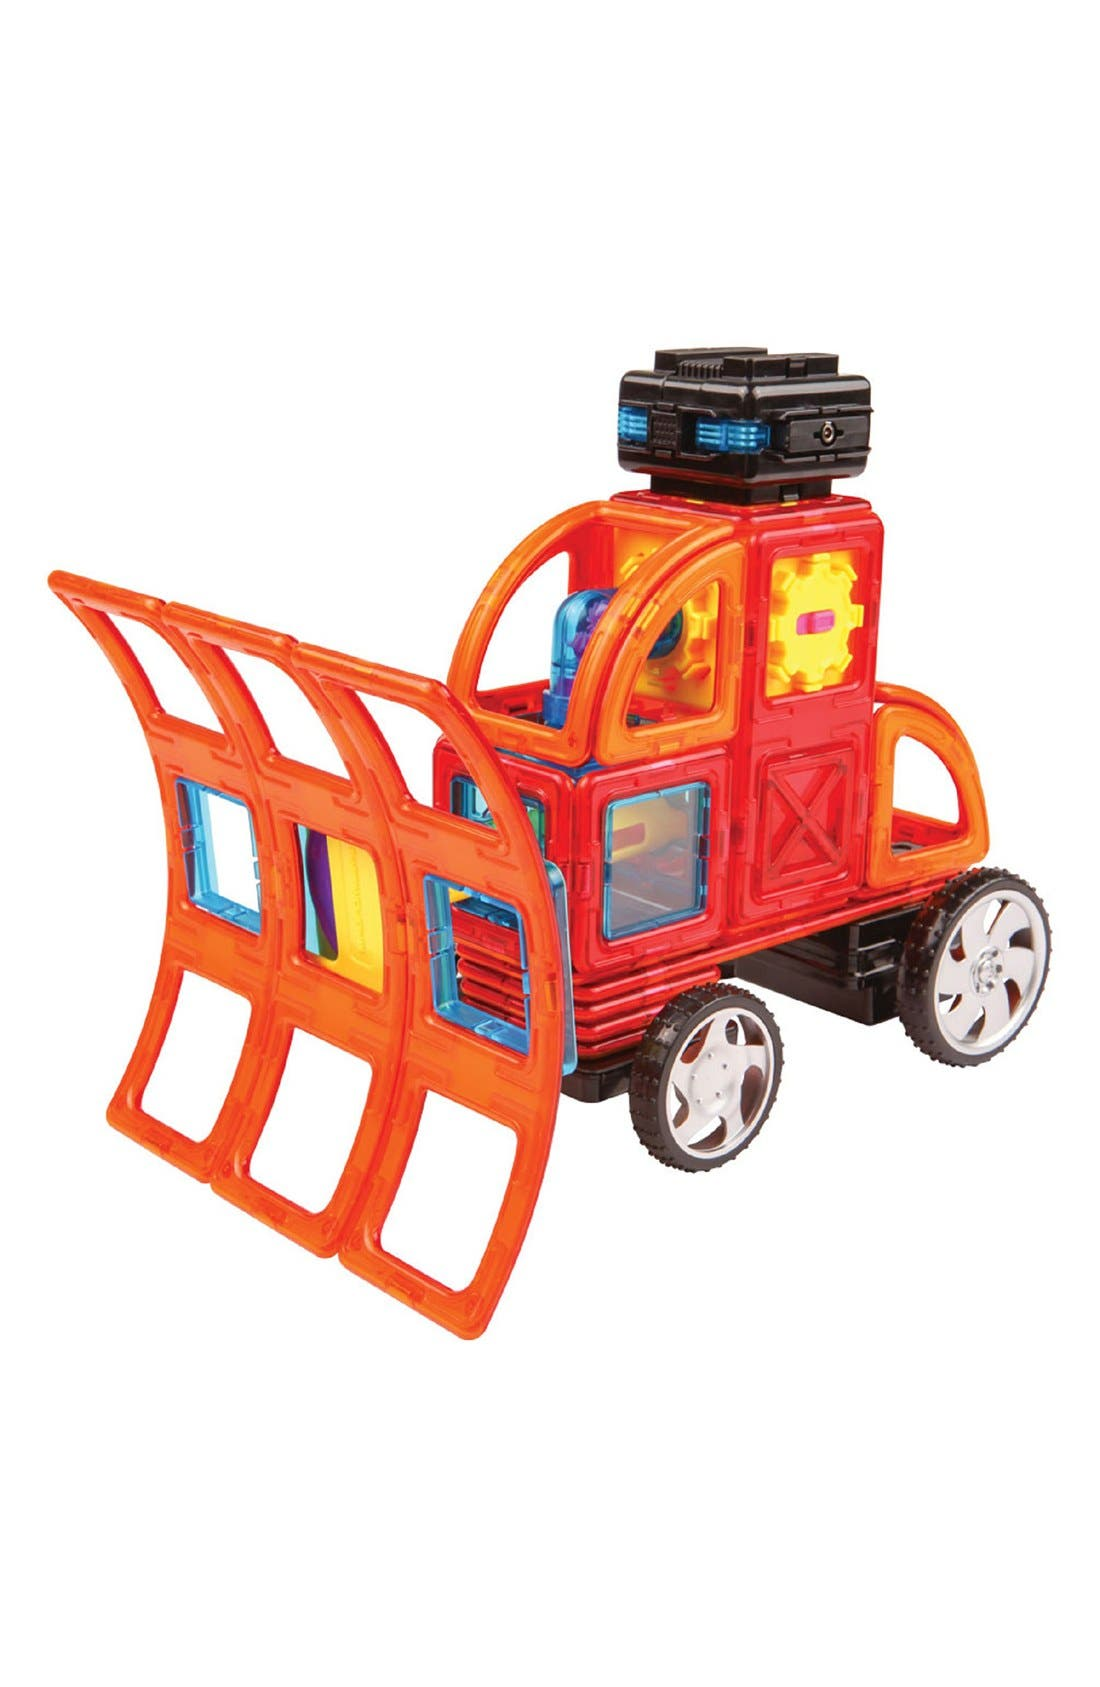 'Heavy Duty' Magnetic Remote Control Vehicle Construction Set,                             Alternate thumbnail 2, color,                             800